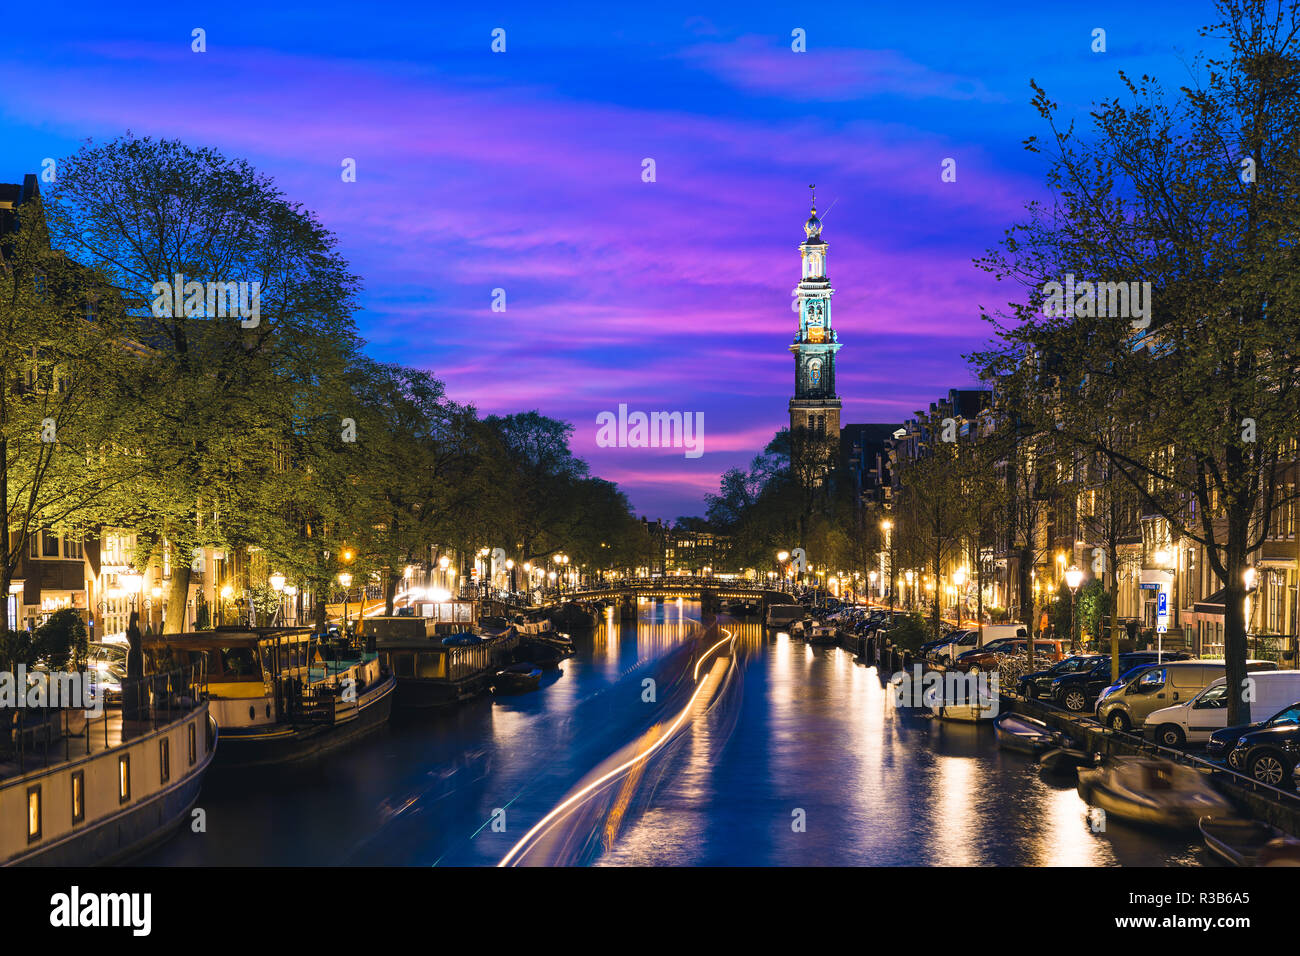 Canals of Amsterdam at night in Netherlands. Amsterdam is the capital and most populous city of the Netherlands. - Stock Image